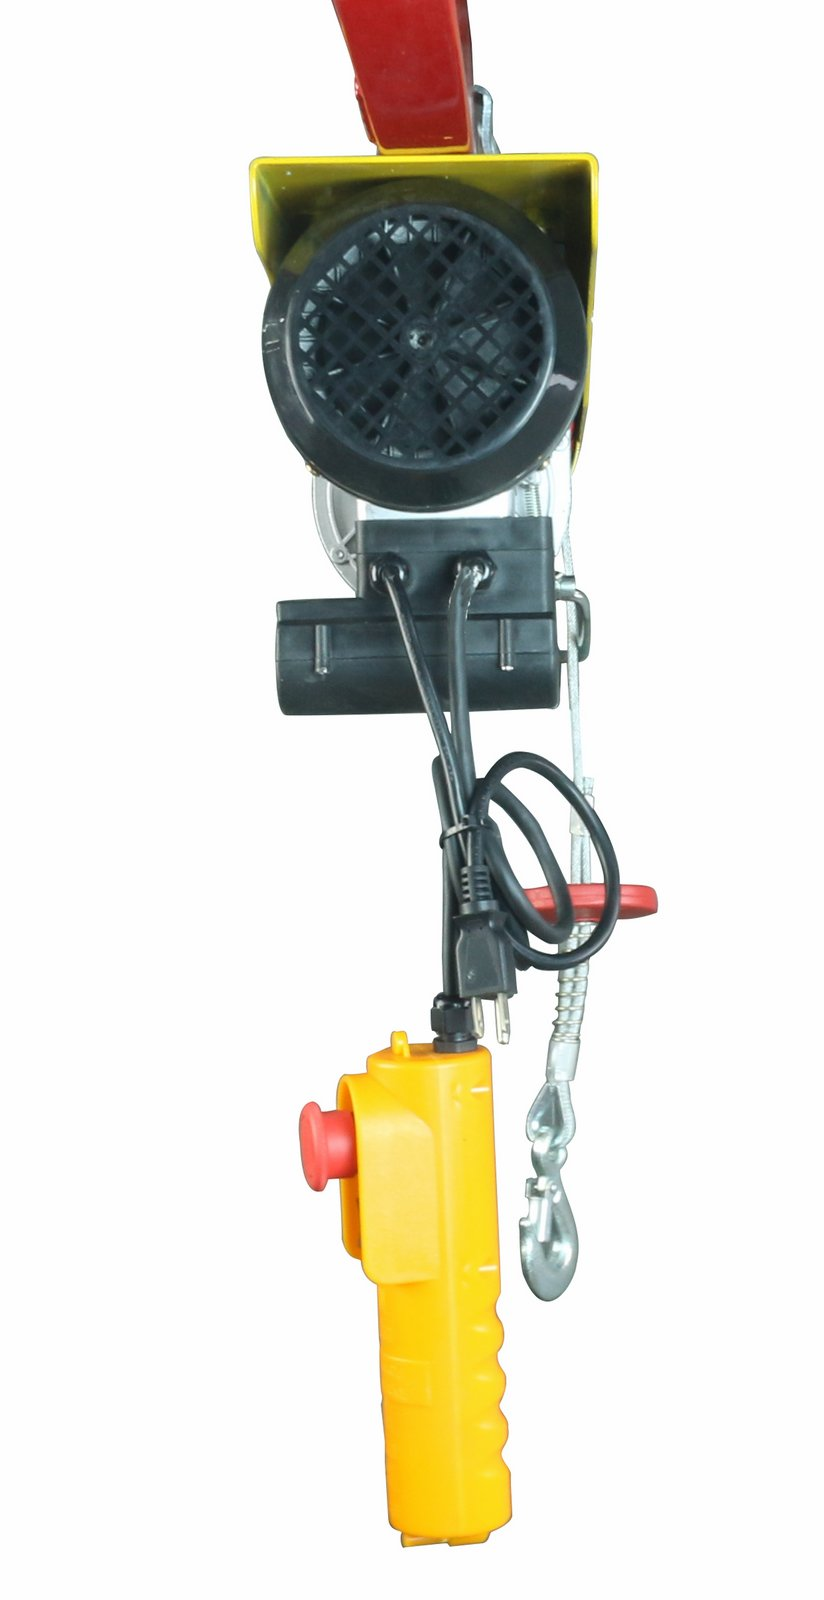 1760LBS 1760LBS Lift Electric Hoist Crane Double Line Lift Hoist Remote Control Power System,Steel Wire Overhead Crane Garage Ceiling Pulley Winch w//Emergency Stop Switch